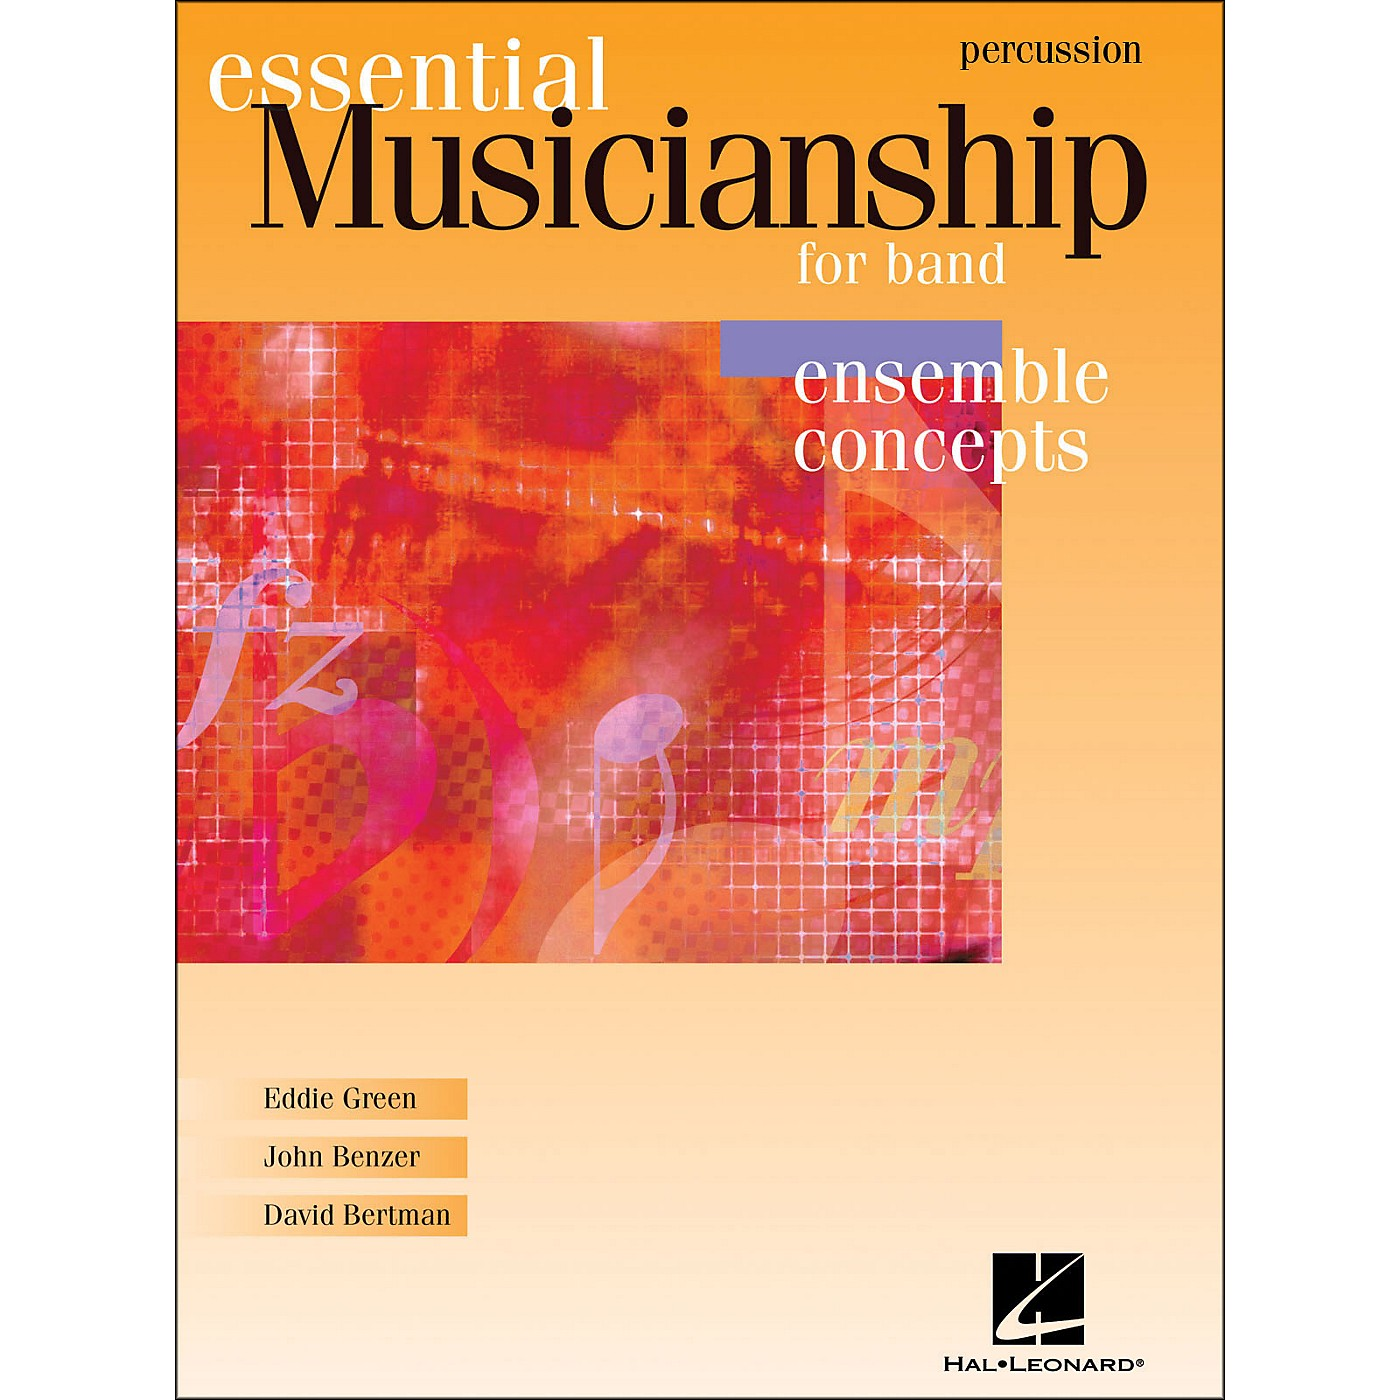 Hal Leonard Essential Musicianship for Band - Ensemble Concepts Percussion thumbnail